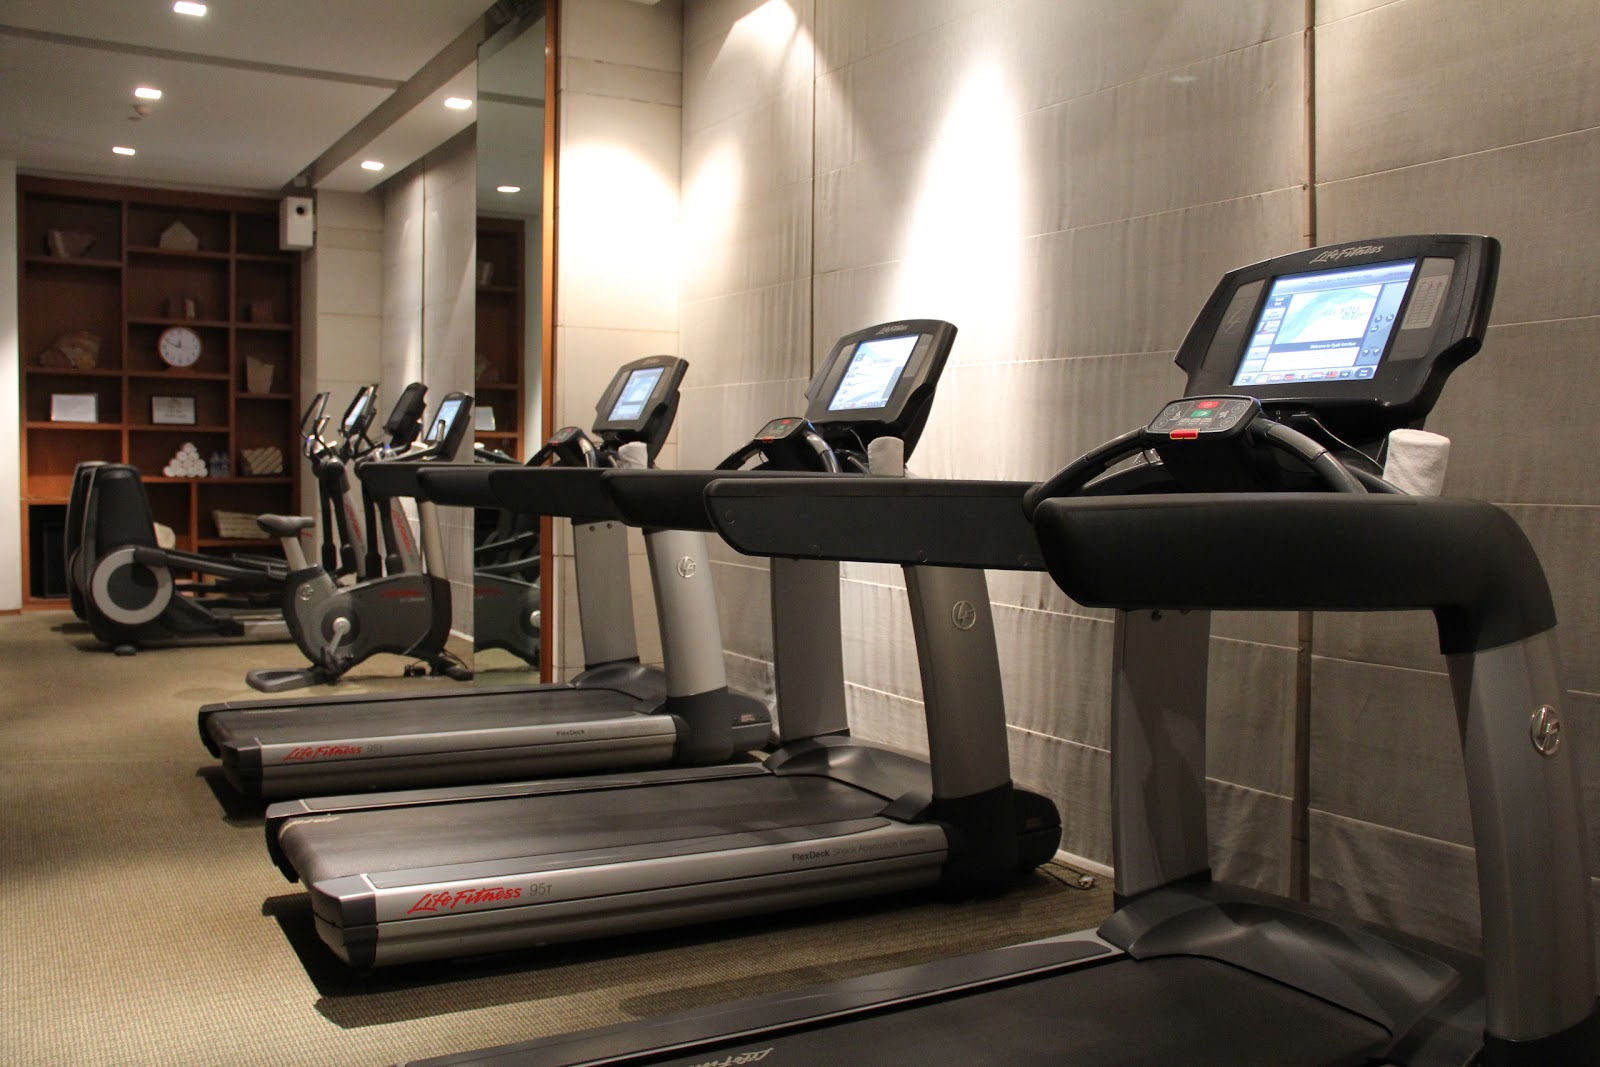 Hyatt Fitness Center - photo